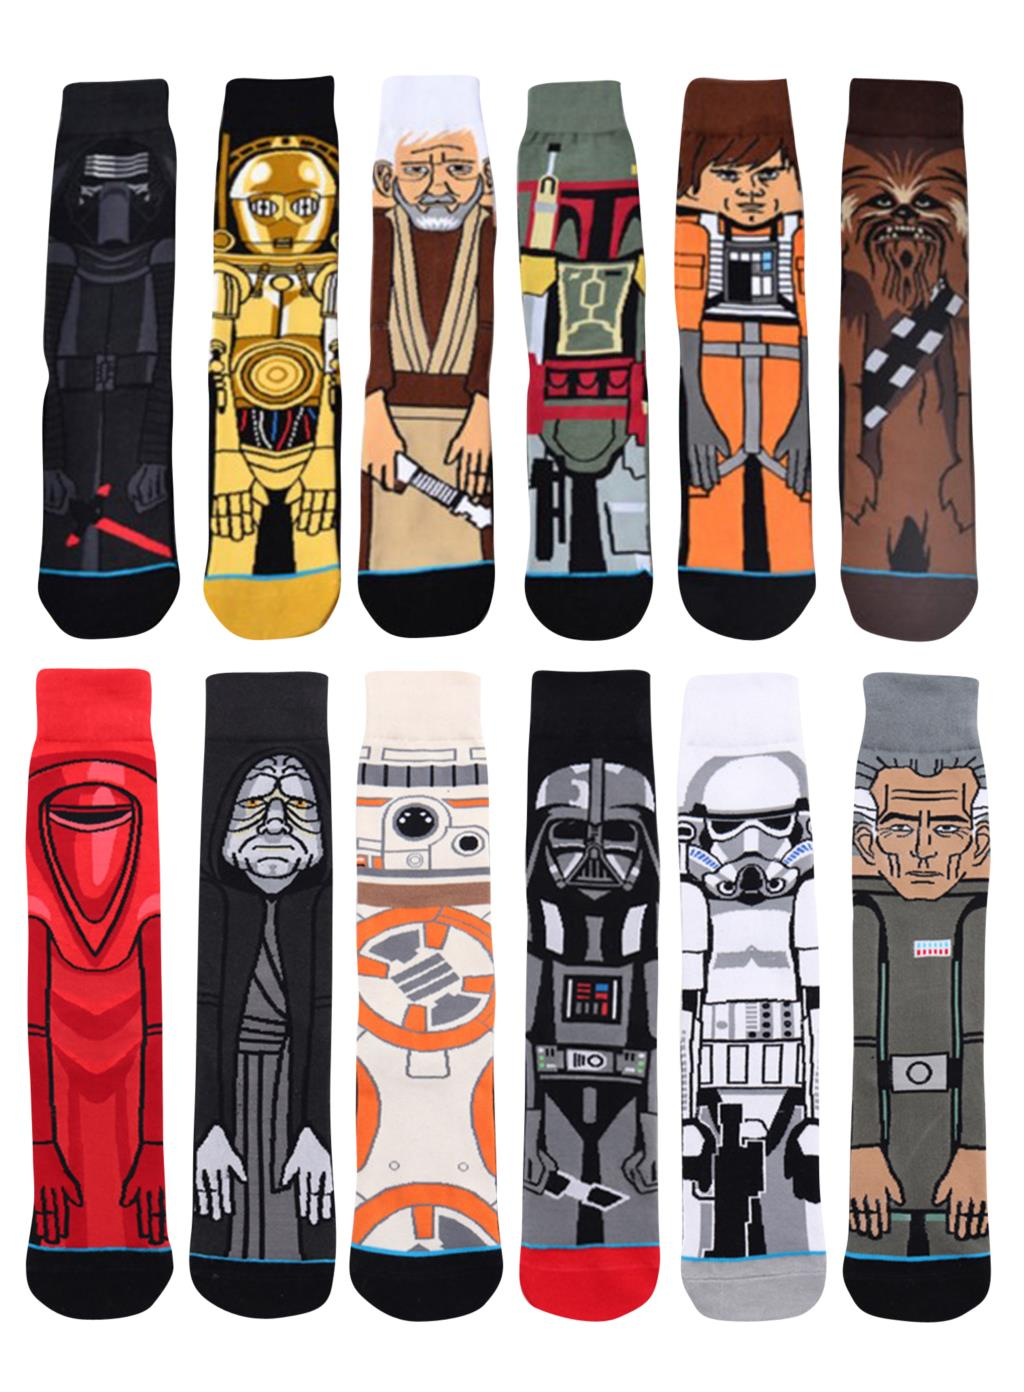 Fashion the film   Socks   Men Women Long   Socks   Hip Hop Street Sport Skateboard black white Crew Autumn winter high quality   Socks